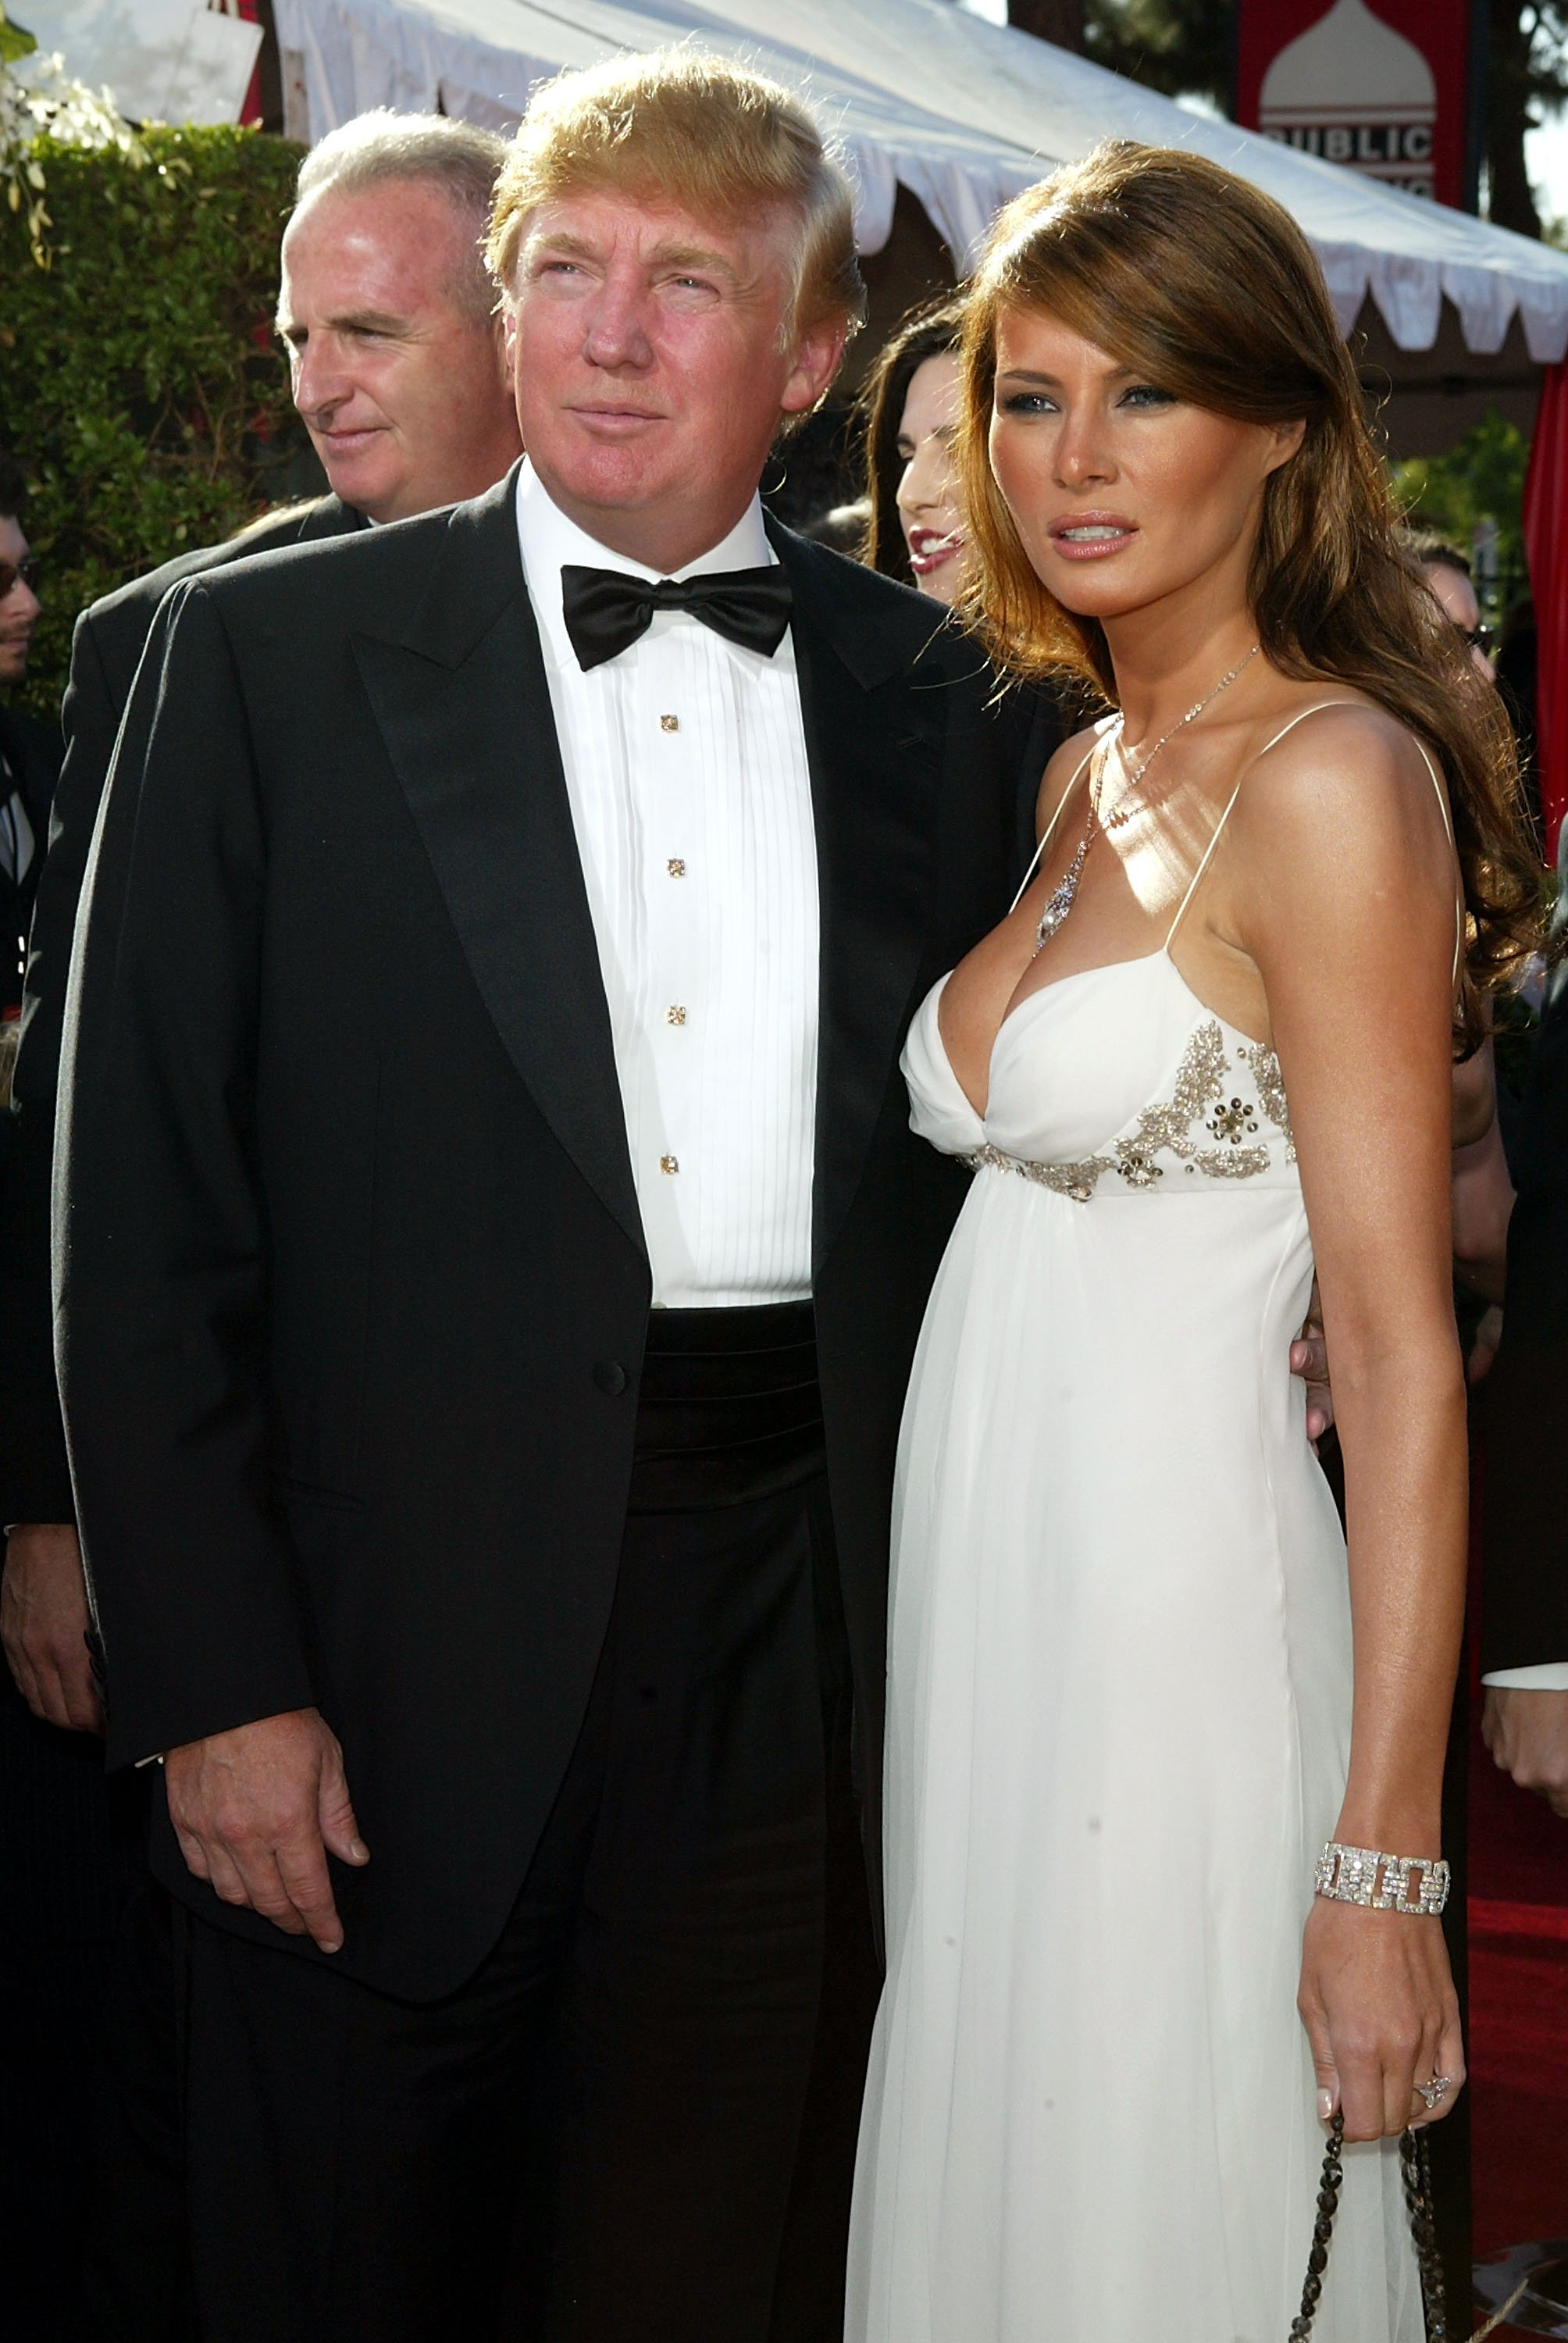 President Donald Trump and his wife Melania Trump   Photo: Getty Images